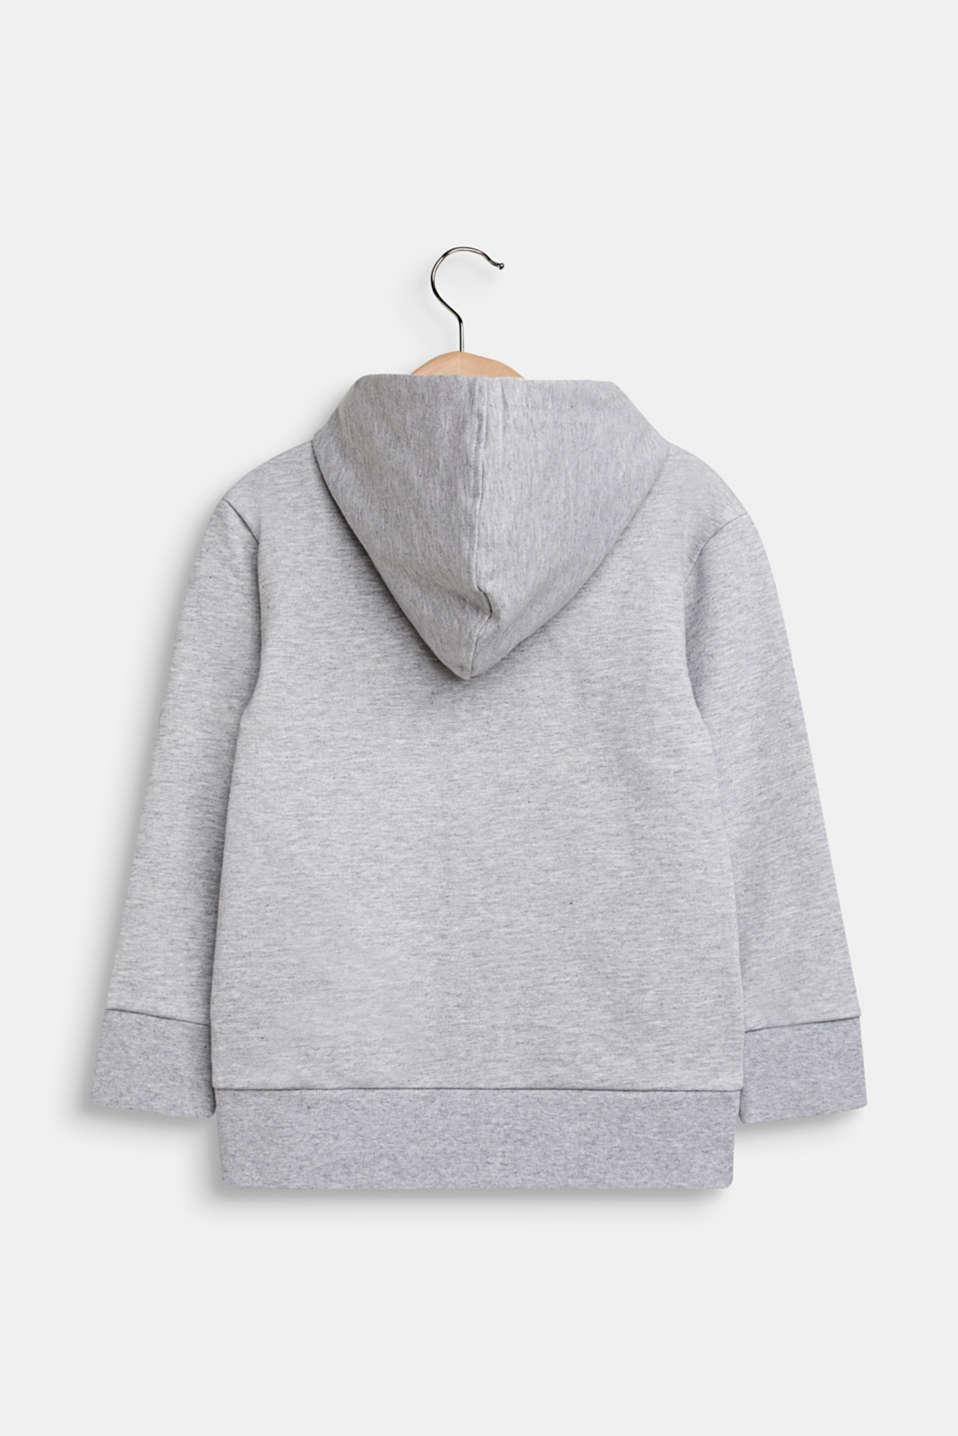 Sweatshirt cardigan with hood, 100% cotton, HEATHER SILVER, detail image number 1